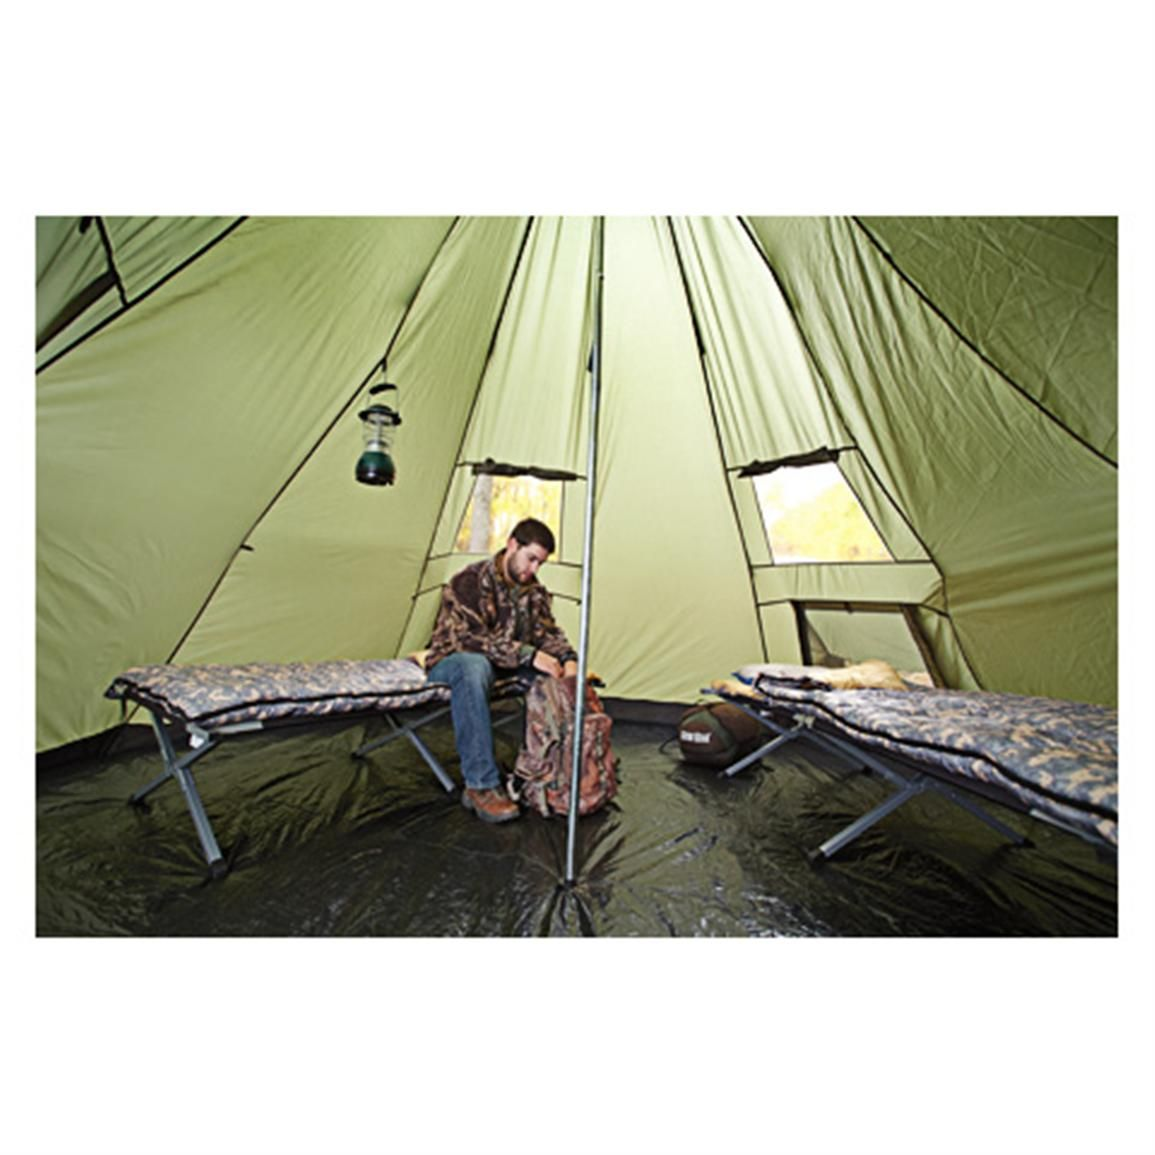 Guide Gear Deluxe Teepee Tent 14u0027 x 14u0027  sc 1 st  Pinterest & Guide Gear Deluxe Teepee Tent 14u0027 x 14u0027 | Teepee tent and Tents